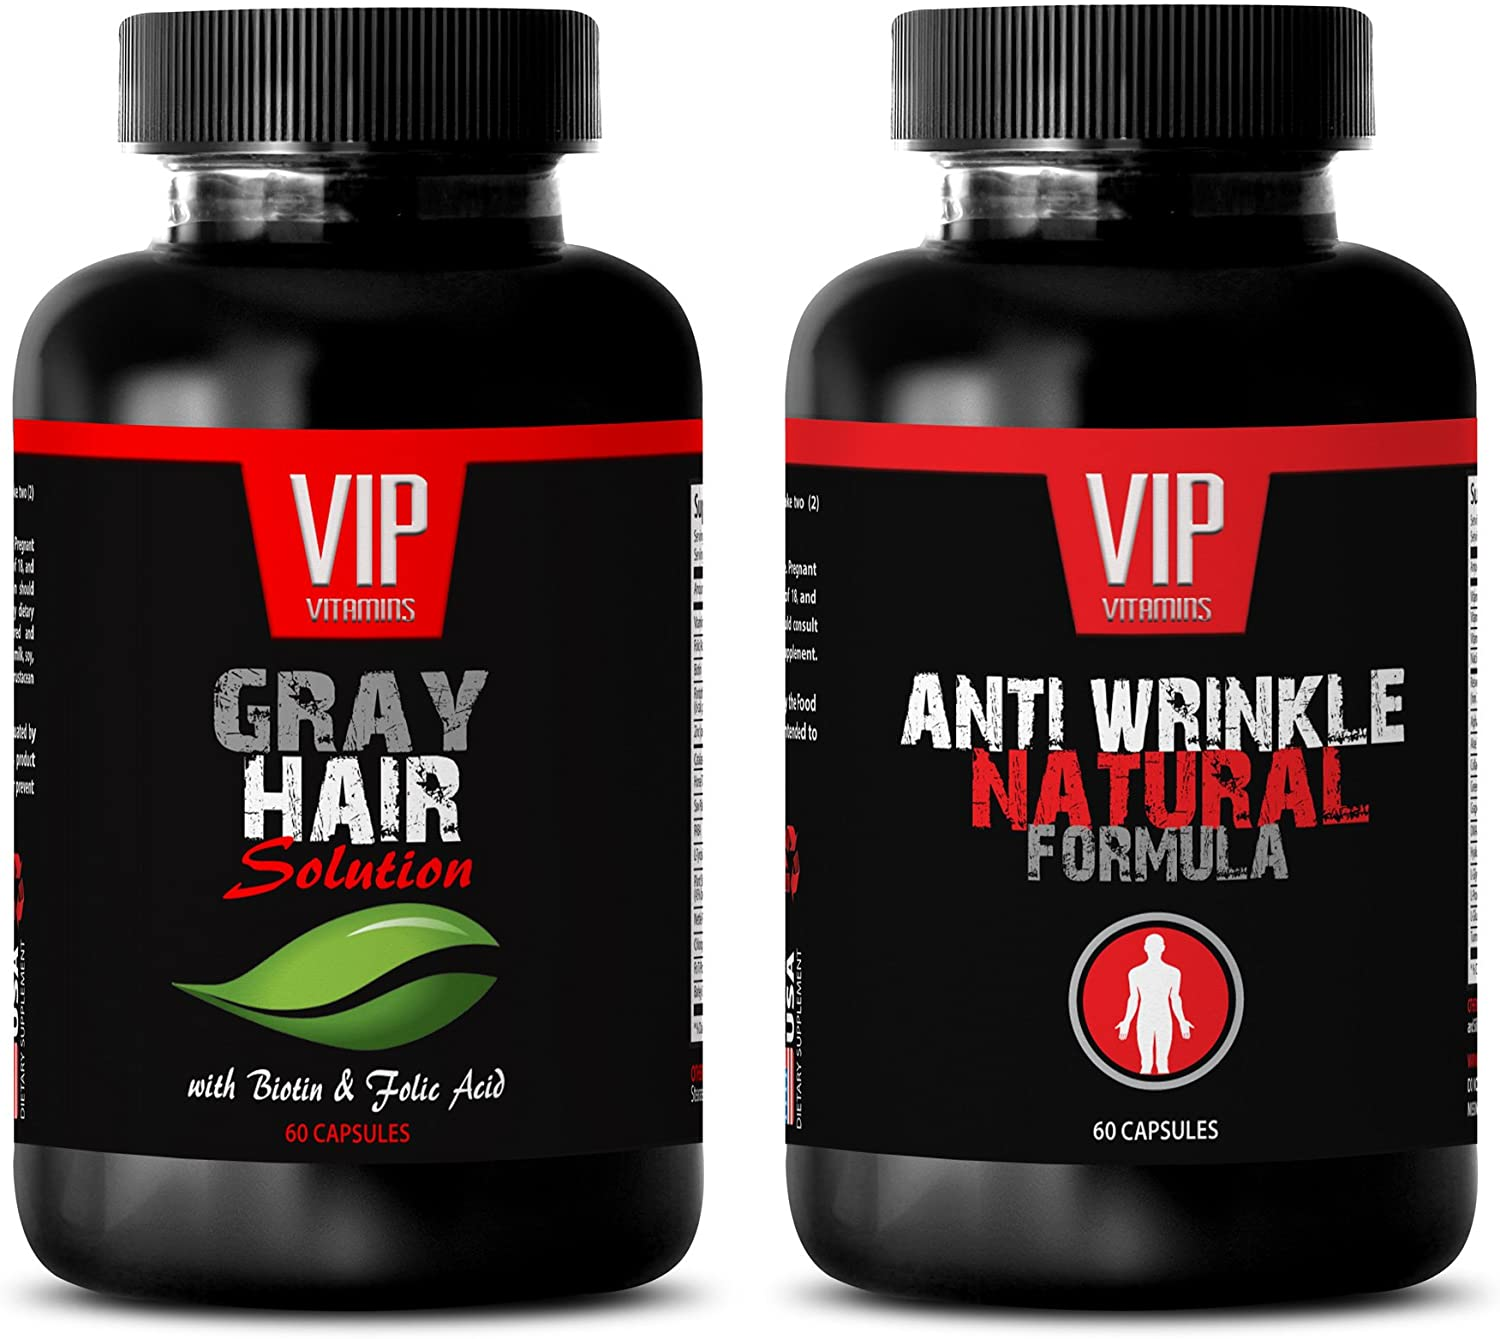 Rejuvenation Beauty - Gray Hair Solution – Anti Wrinkle Formula - Saw Palmetto Oil Extract - 2 Bottles (60 Capsules + 60 Capsules)